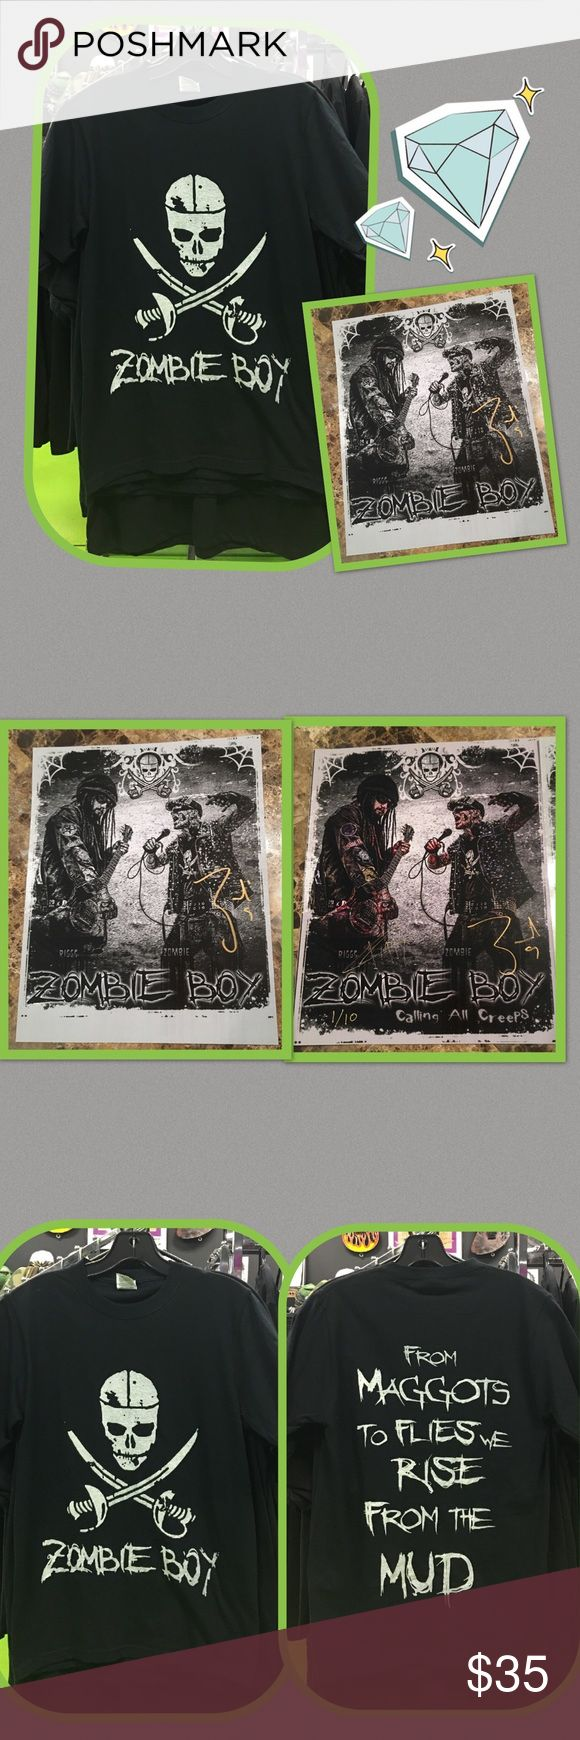 """💘Zombie Boy Bundle Zombie Boy as seen in """"born this way"""" video with Lady GaGa. He started a band with Riggs the original guitar player from Rob Zombie. Get a personalized signed 8x10 your choice color or black and white and a Zombie boy t-shirt in white or silver Shirts Tees - Short Sleeve"""